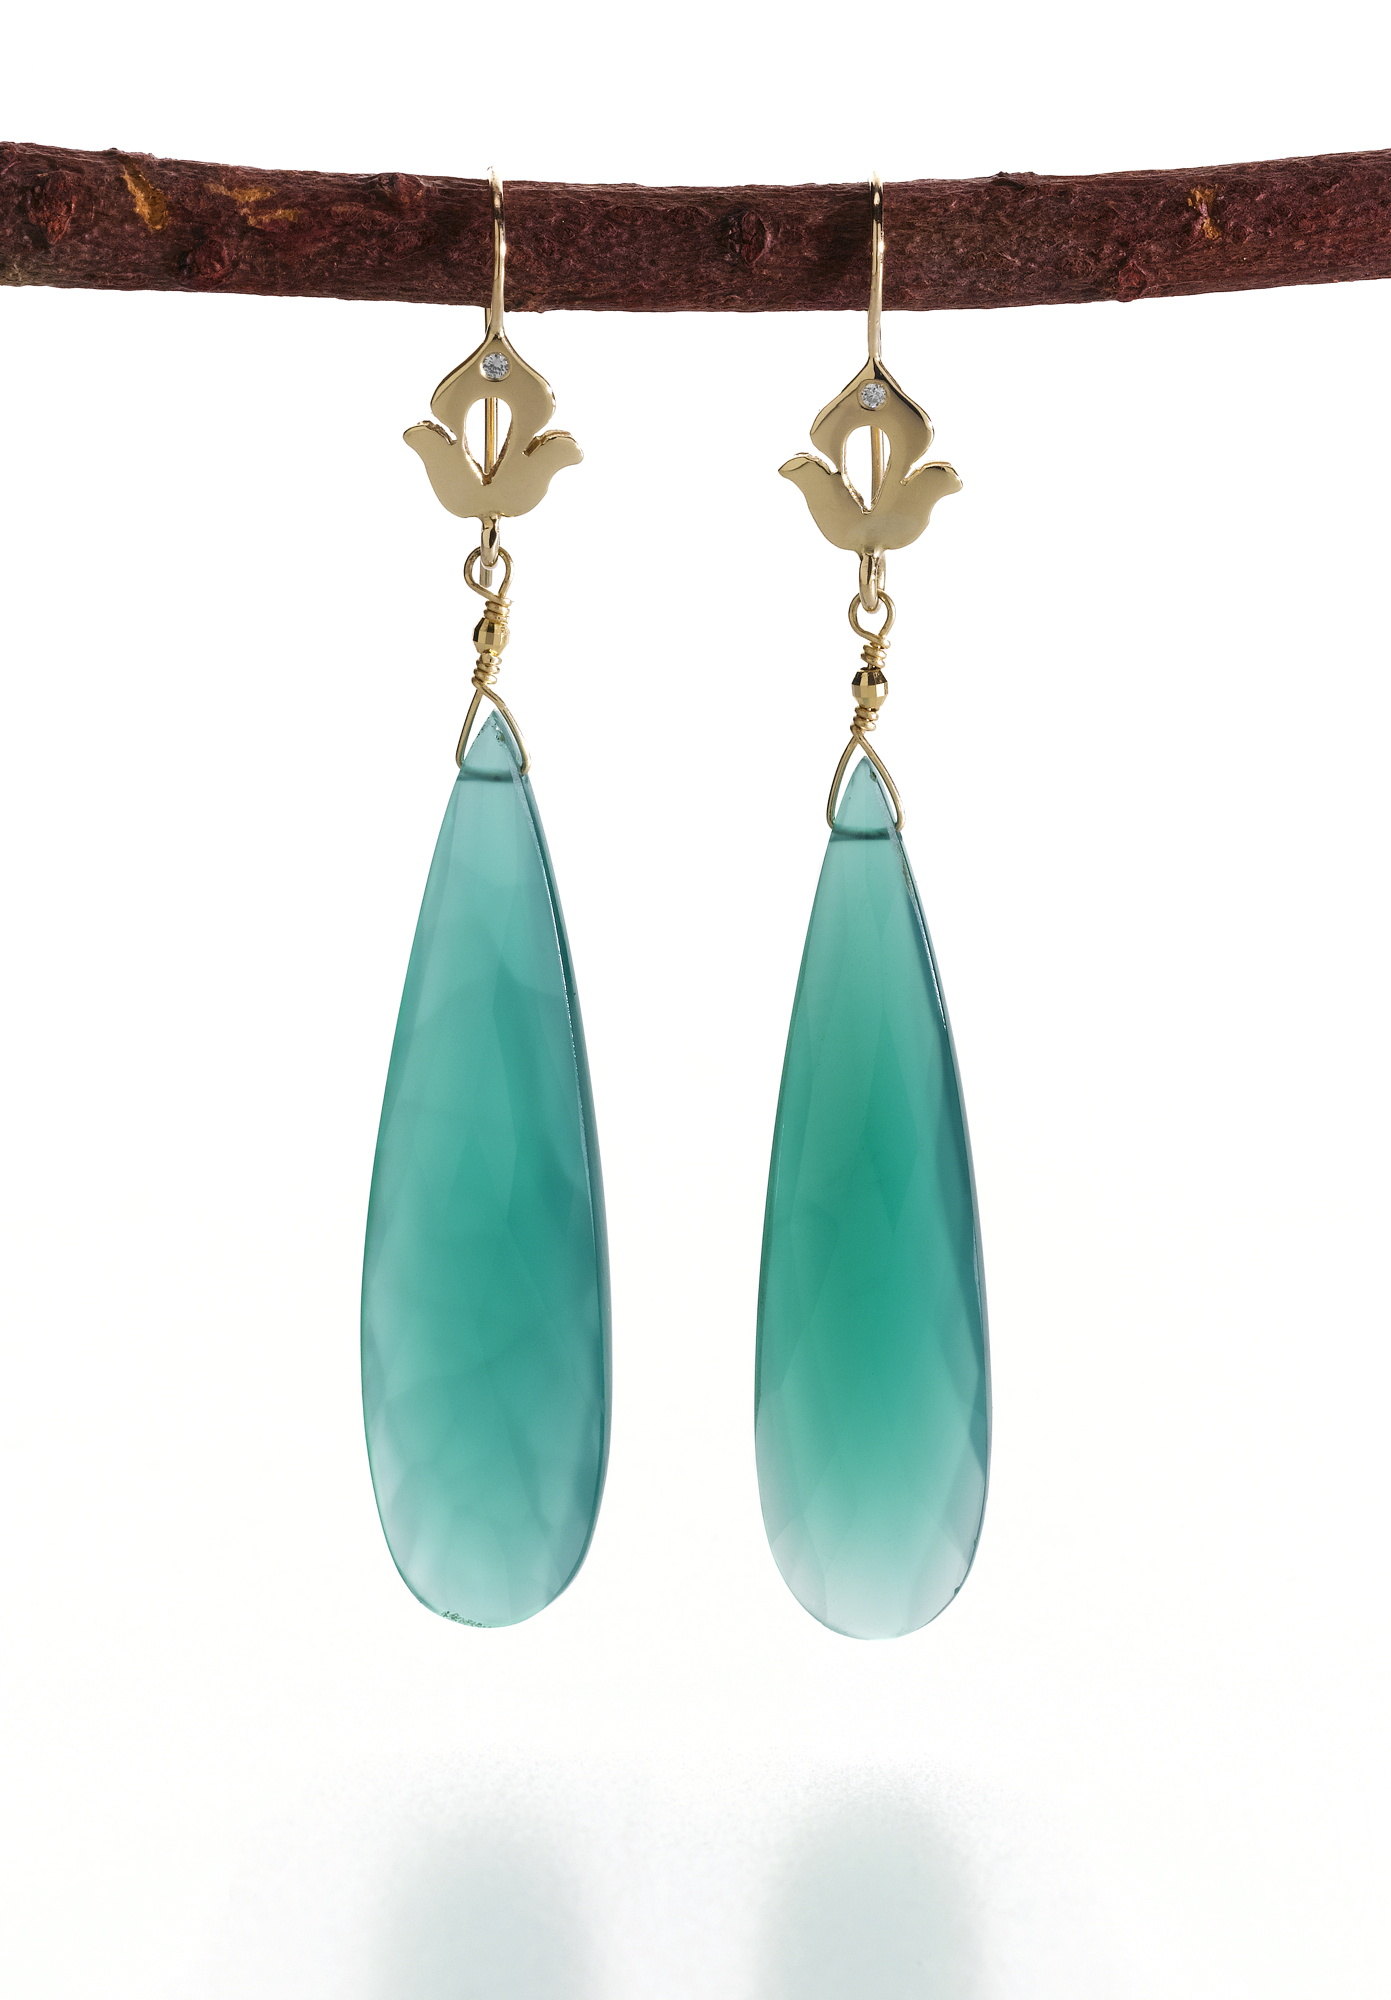 Shamila Green Onyx and Diamond earrings, Suzanne Marques, Emmy Jewelry